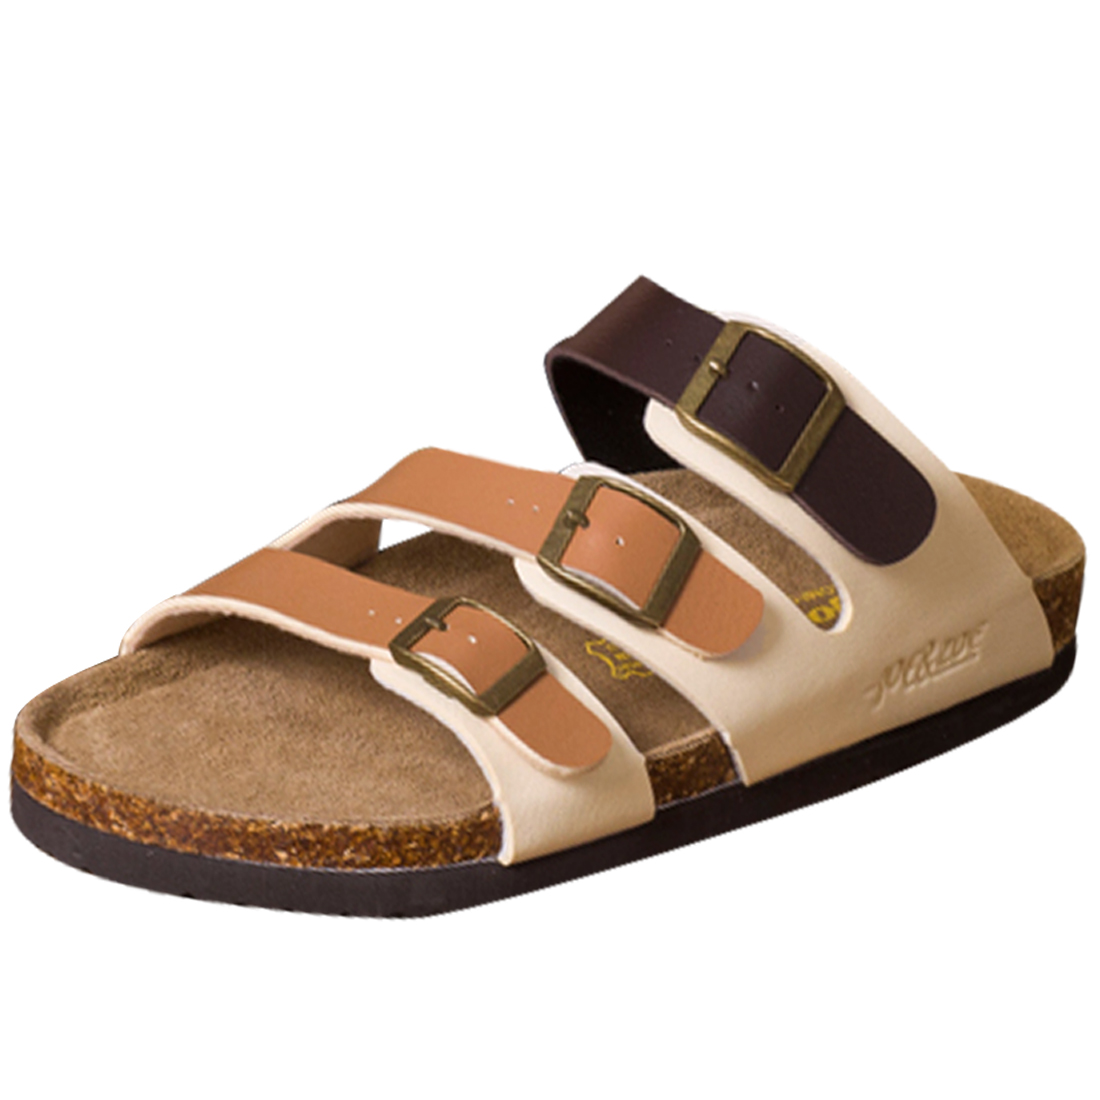 Men Summer 3 Buckles Light Coffee Brown White Sandals US 6